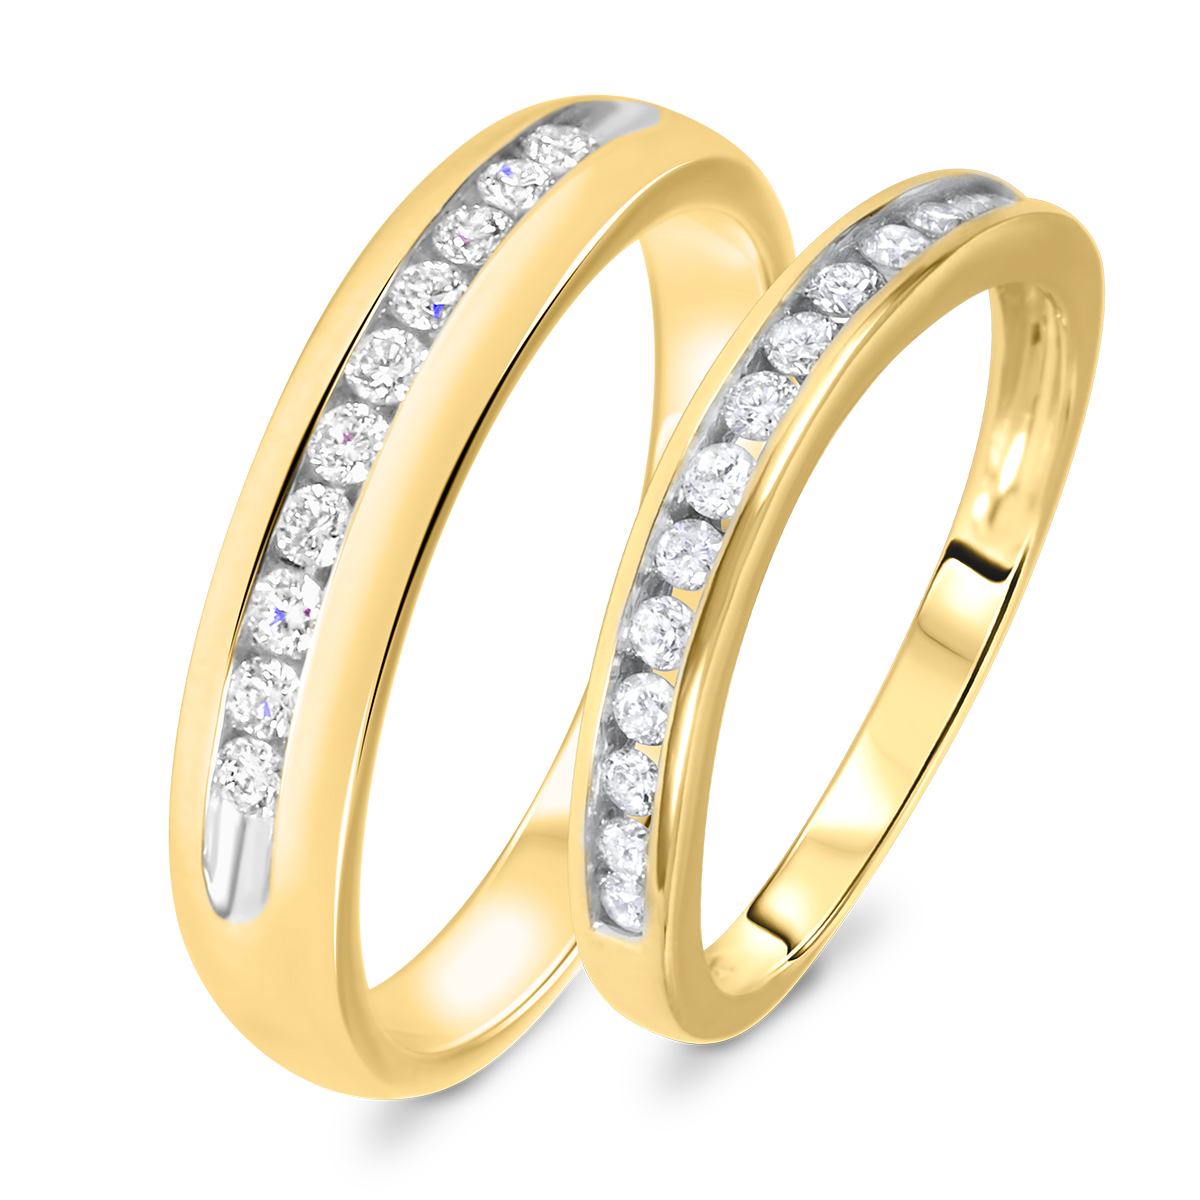 1/2 Carat T.W. Round Cut Diamond His And Hers Wedding Band Set 14K Yellow Gold-